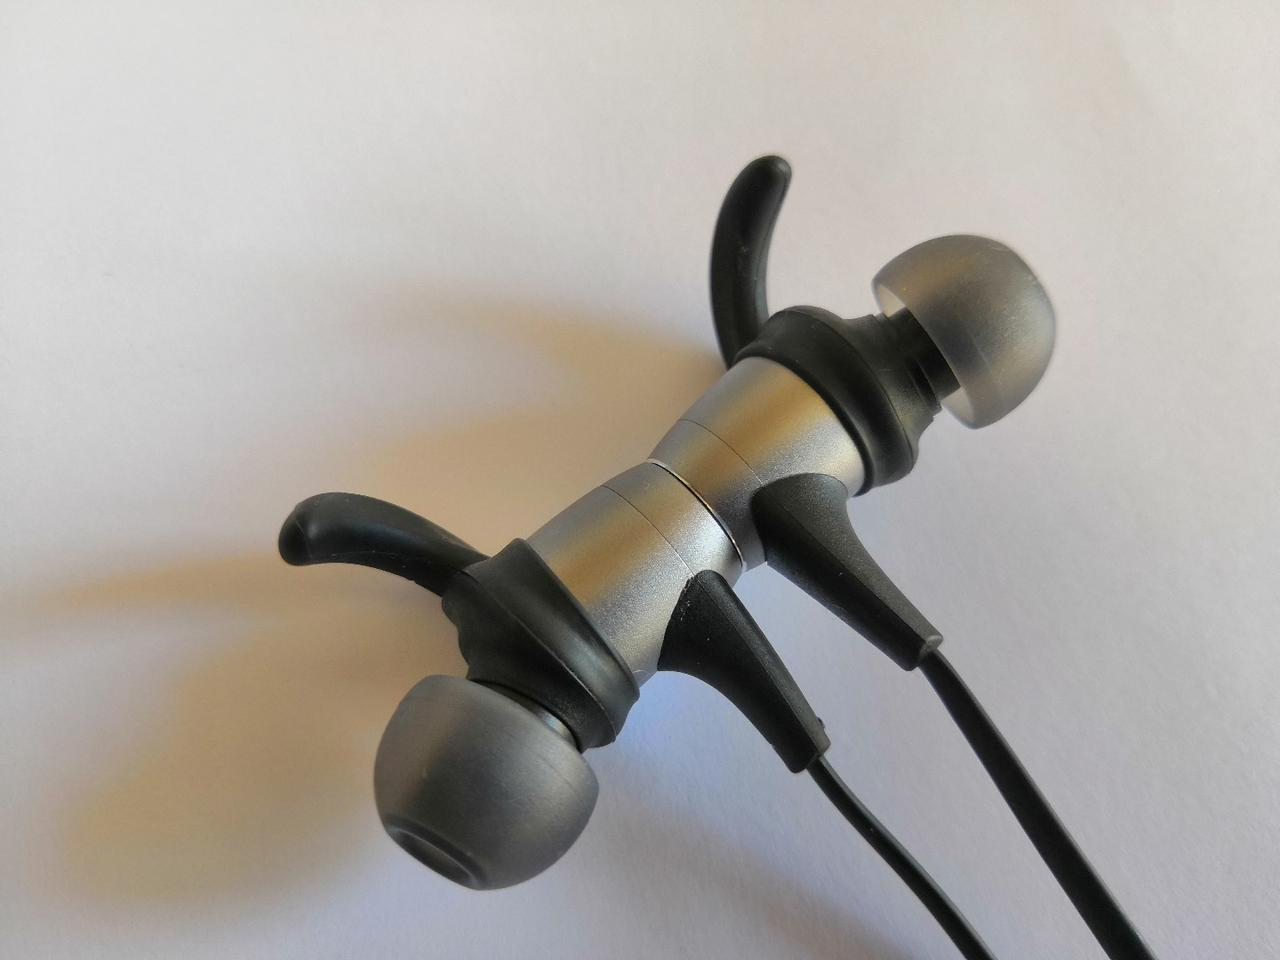 The Spirt Pro's earbuds have magnetized backs